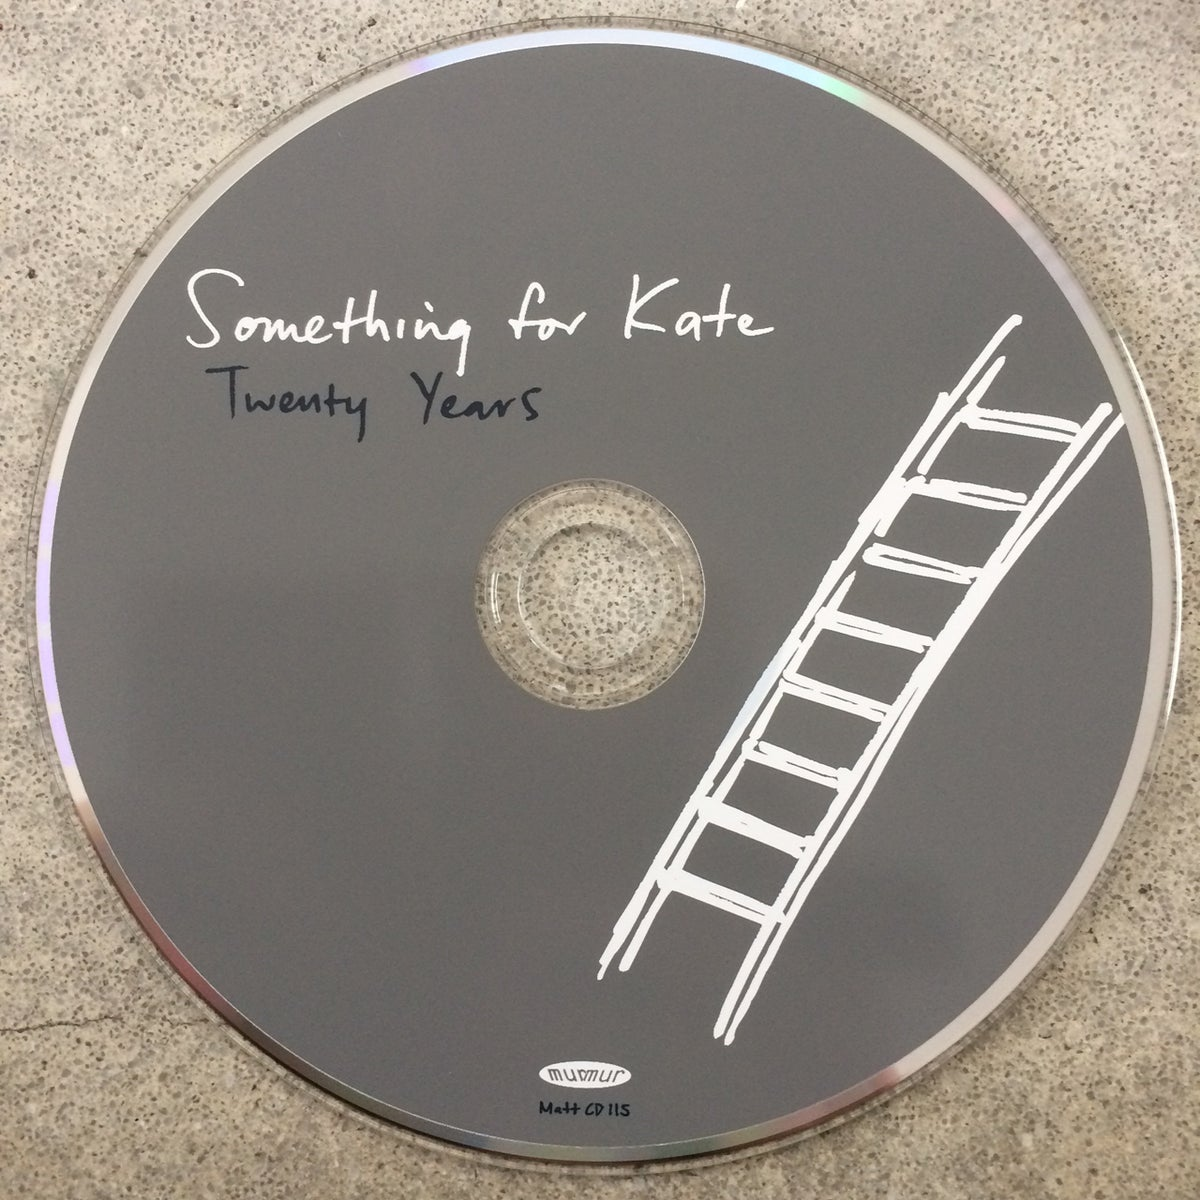 Image of Something for Kate - 'Twenty Years' CD single